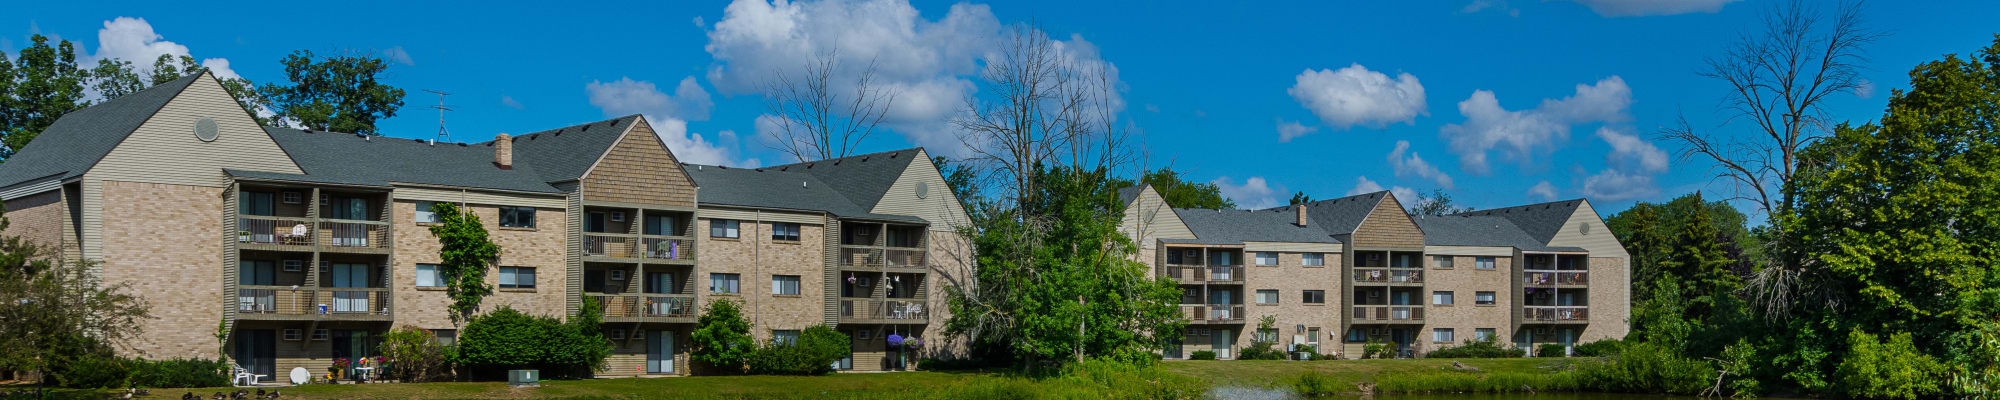 Join Our Team at Kellogg Cove Apartments in Kentwood, Michigan